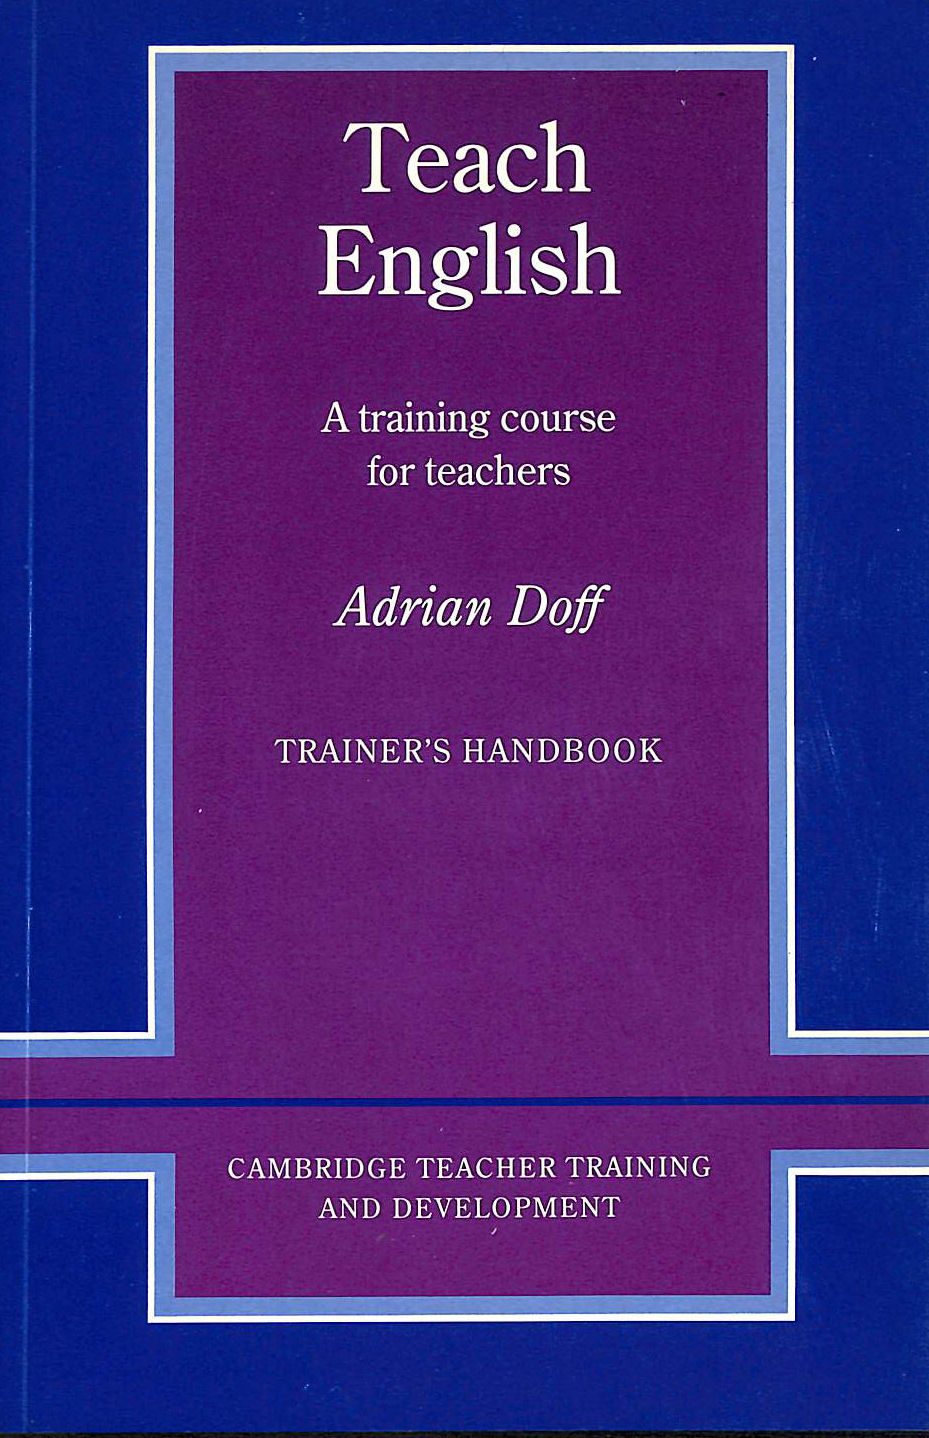 Image for Teach English Trainer's handbook: A Training Course for Teachers (Cambridge Teacher Training and Development)